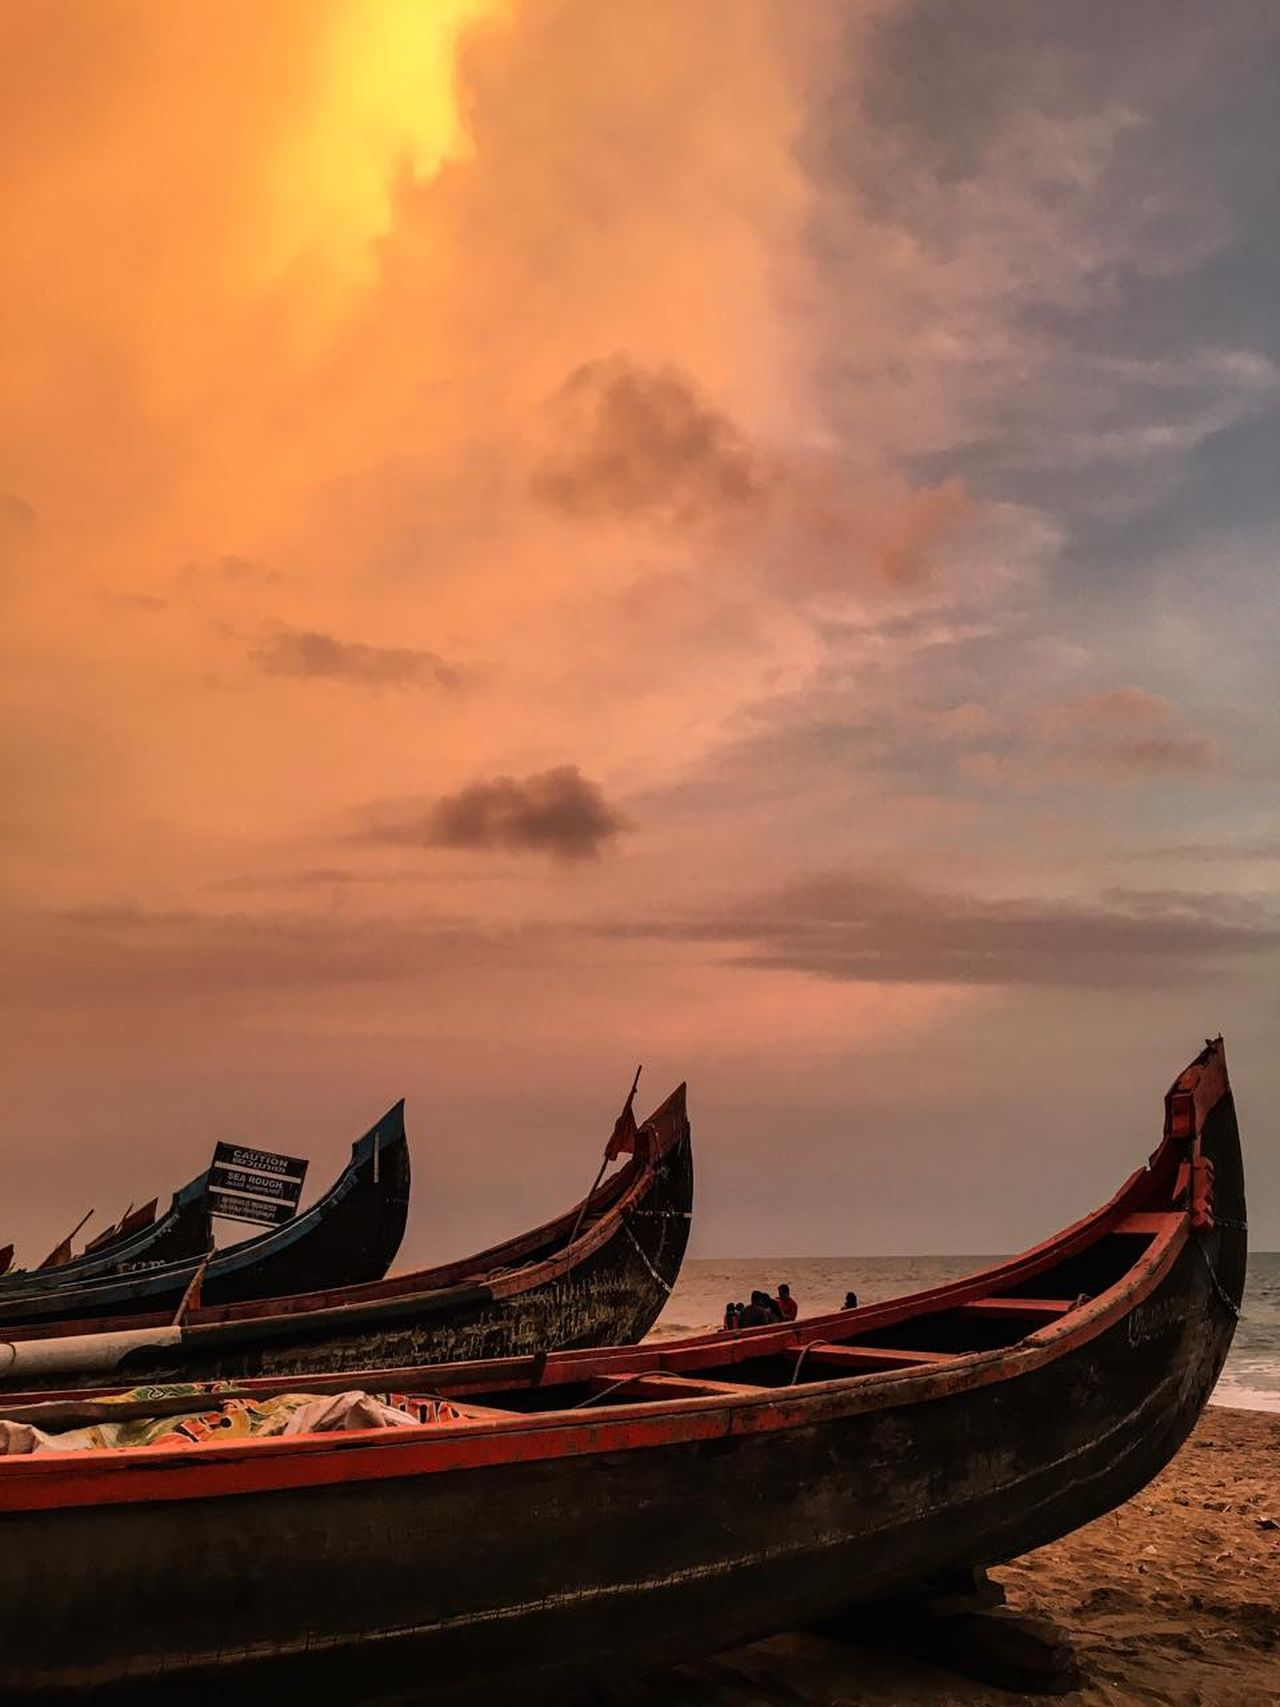 The colors of a sunset Beach Beauty In Nature Boat Cloud - Sky Day Gondola - Traditional Boat Longtail Boat Nature Outdoors Rowboat Scenics Sky Sunset Tranquility Transportation Water Wood - Material